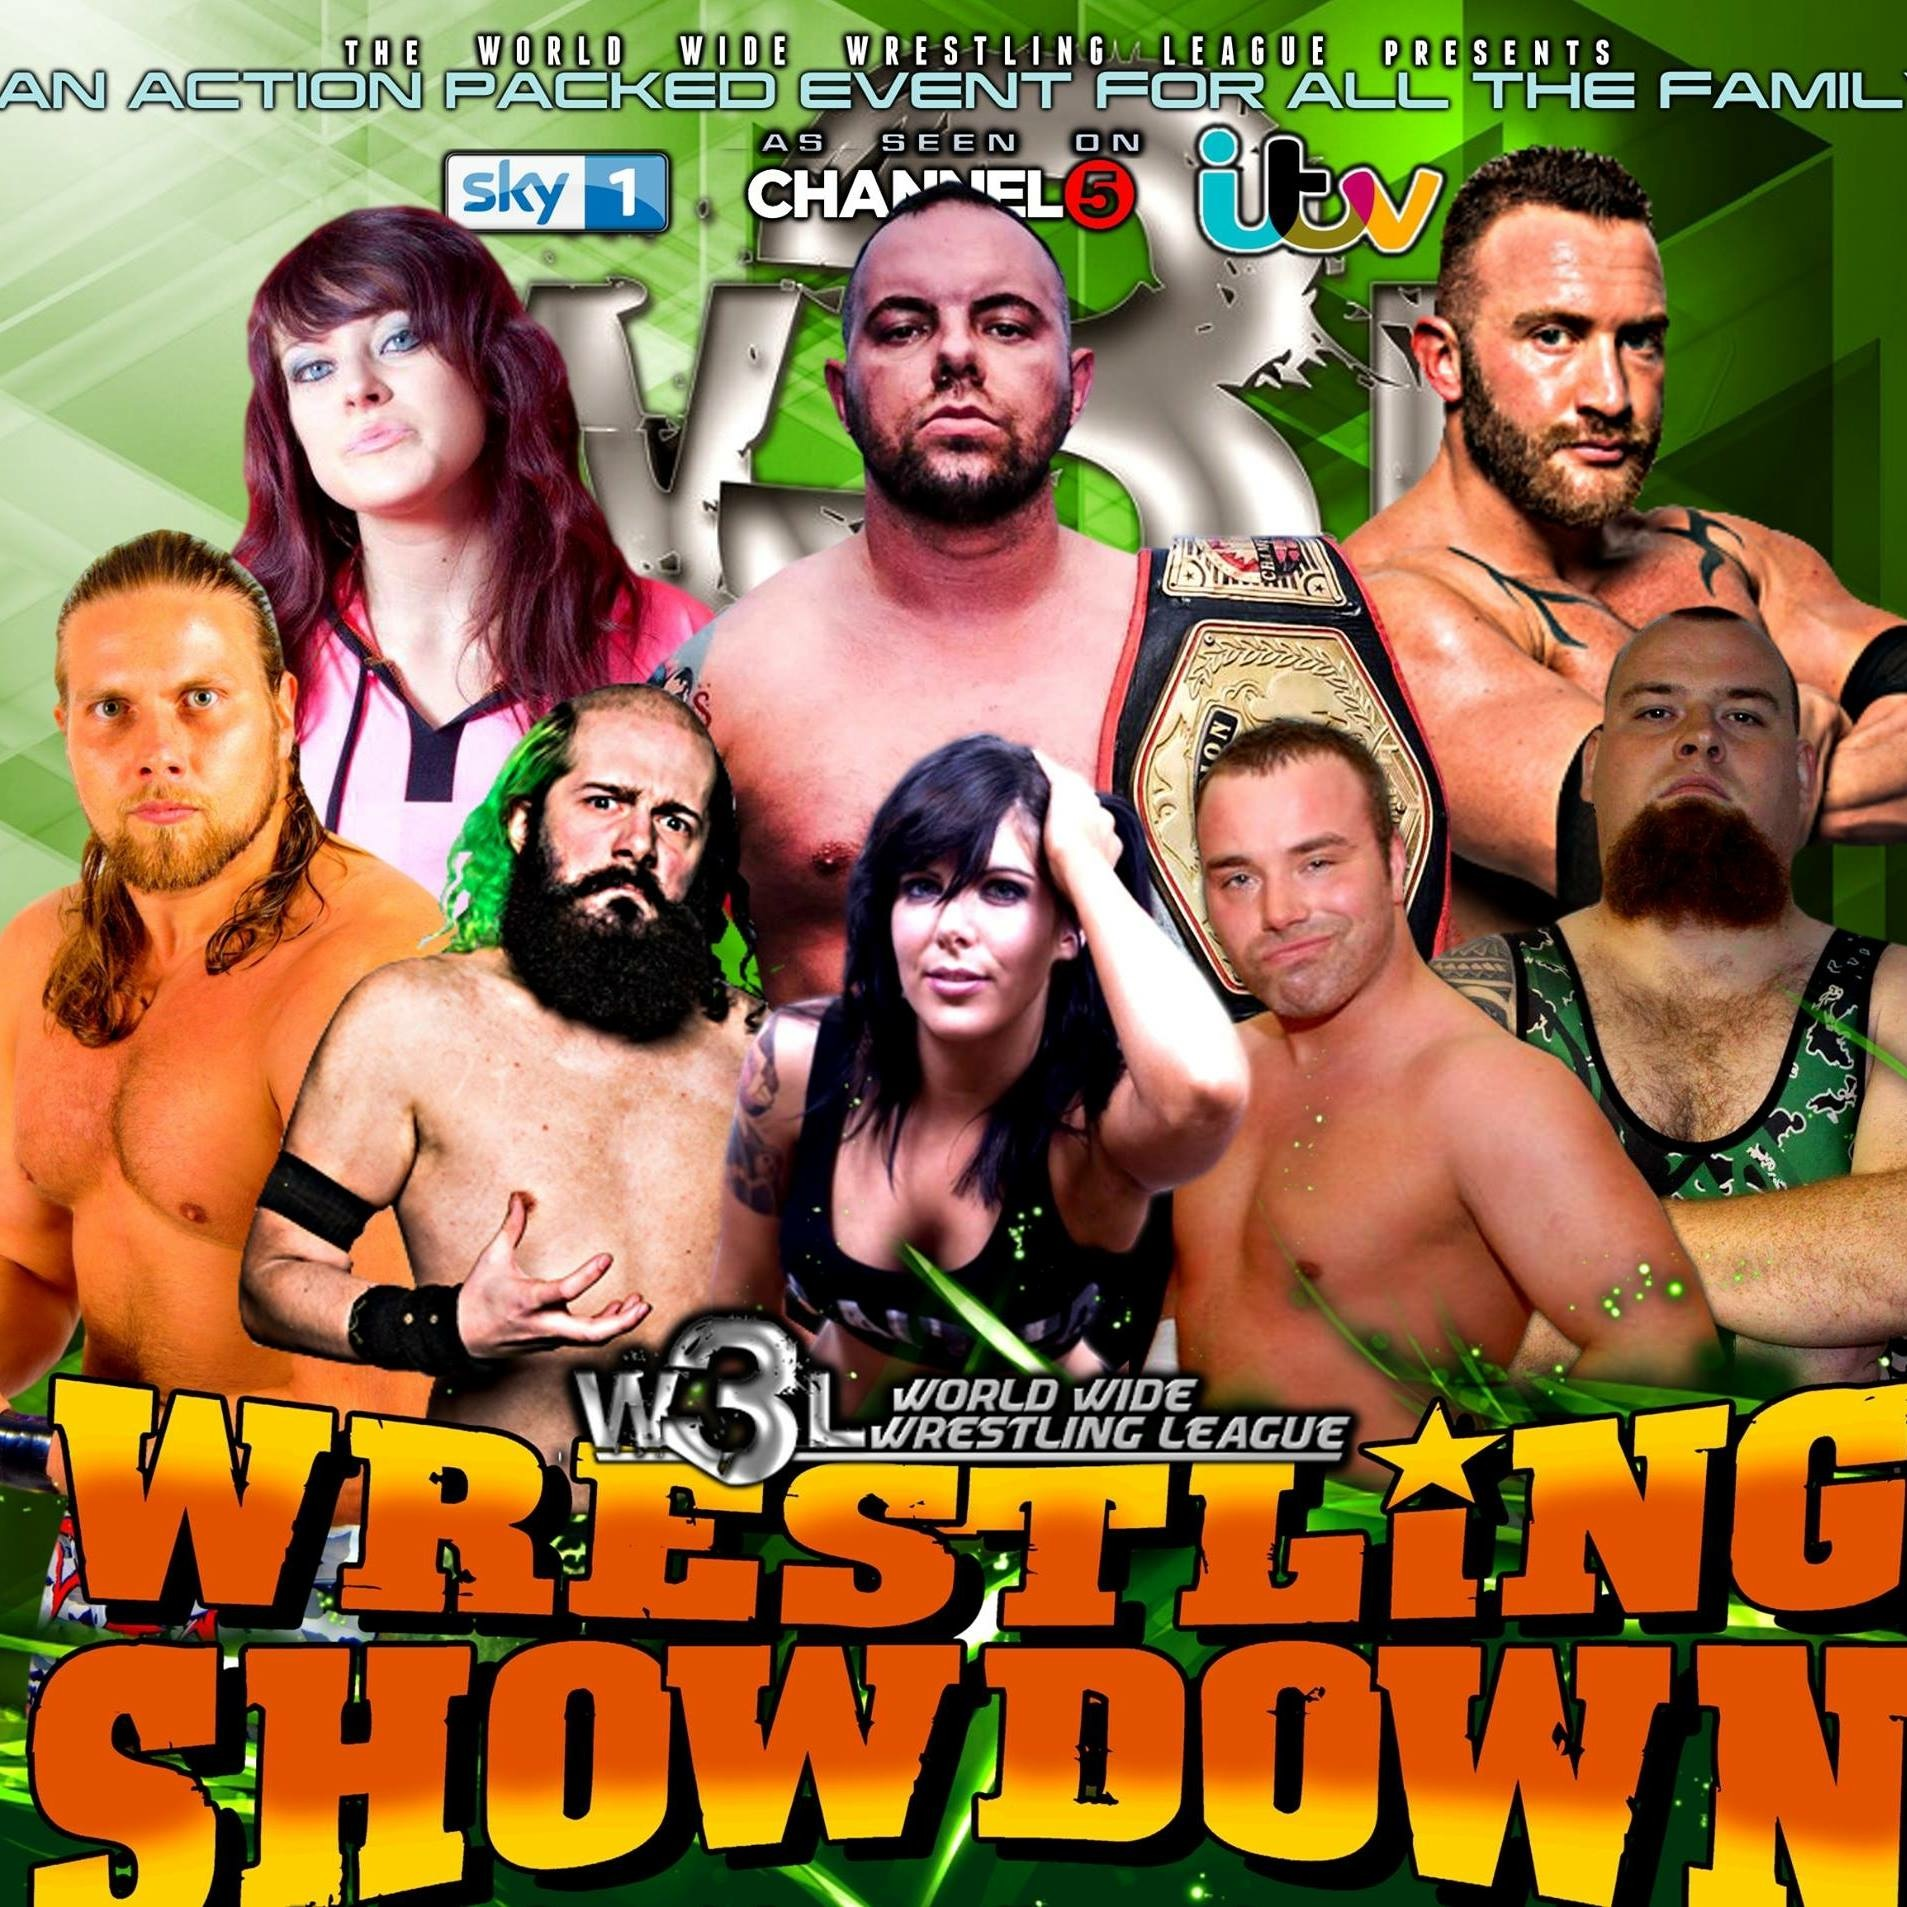 American Wrestling – W3L Wrestling Showdown